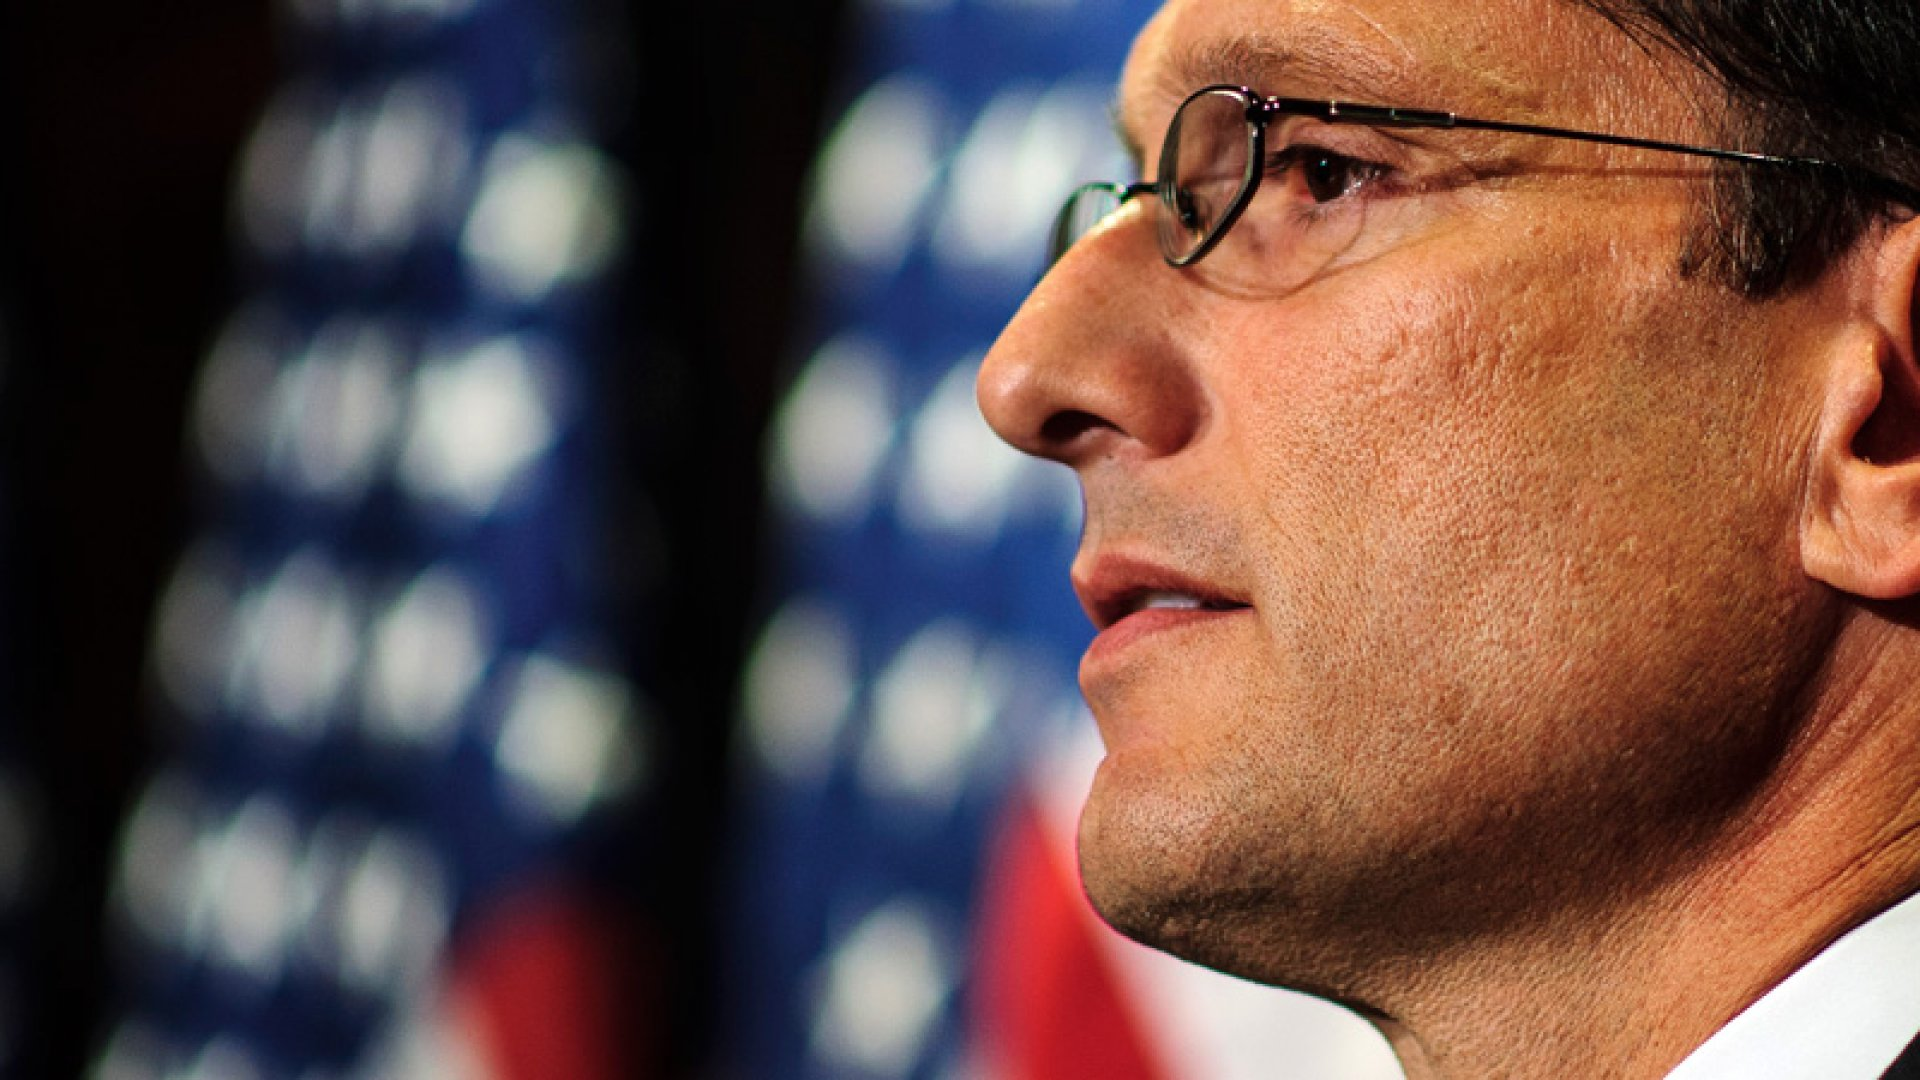 Eric Cantor's Stunning Loss Could Forestall Immigration Reform Altogether (or Not)